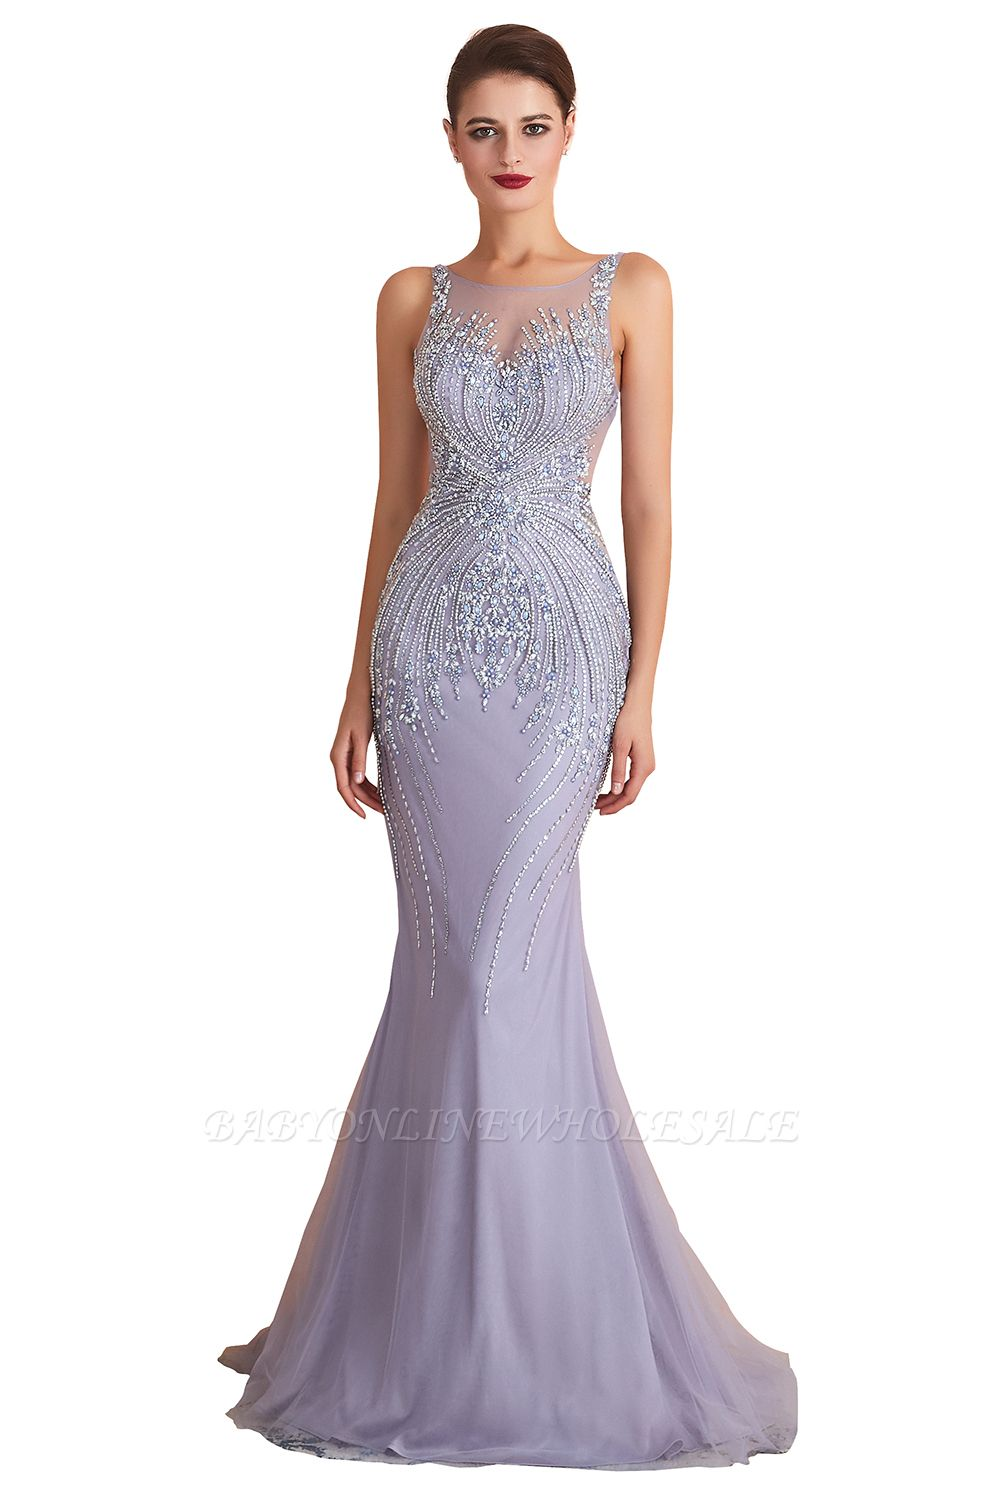 Chipo | Luxury Illusion neck Lavender White Beads Prom Dress Online, Expensive Low back Column Evening Gowns